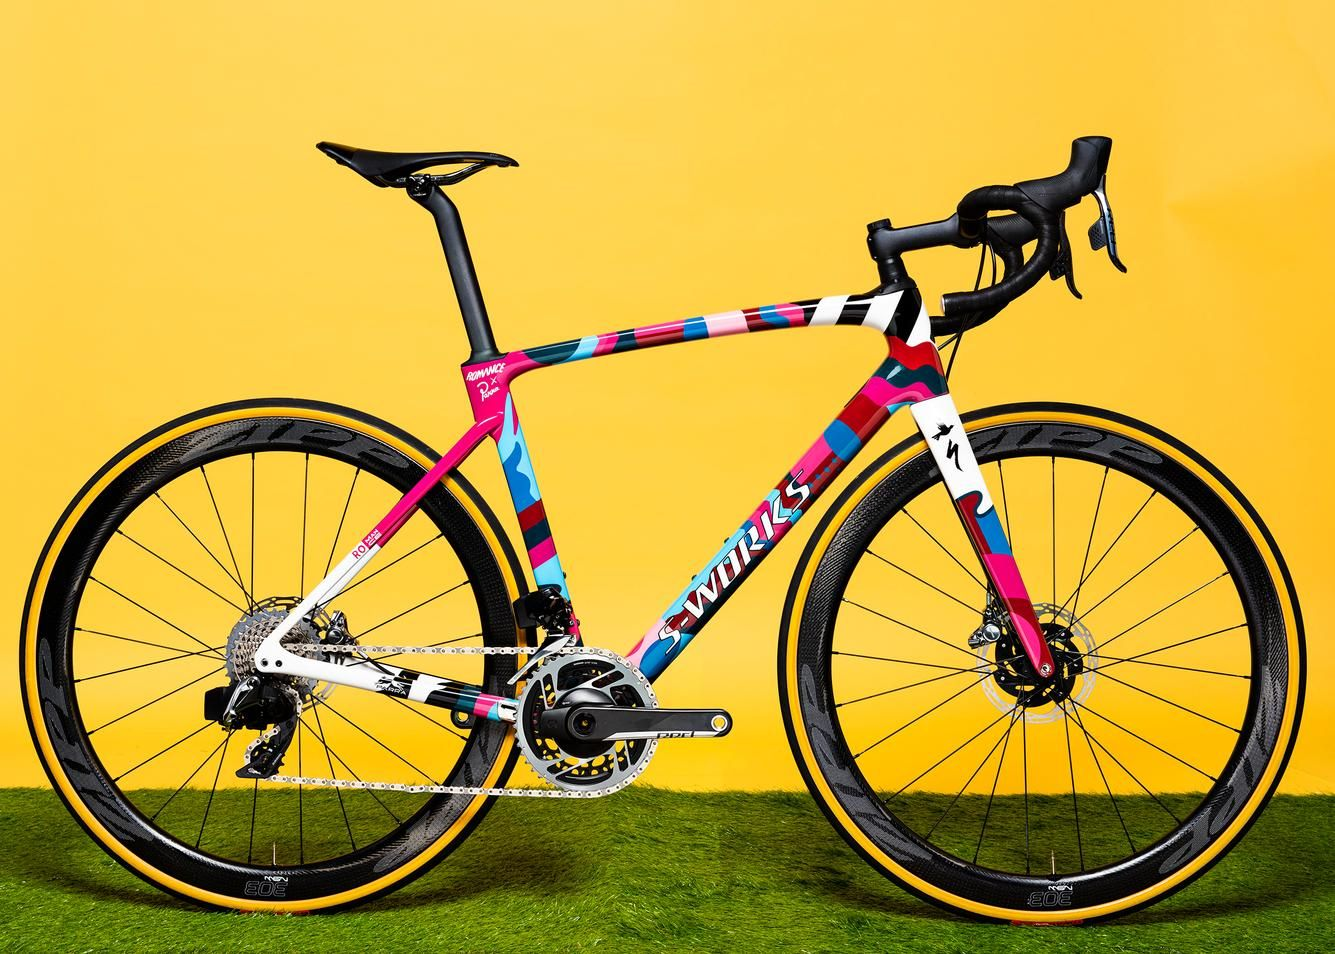 Romance Bikes X Parra For The World Bicycle Relief Bicycle Bike